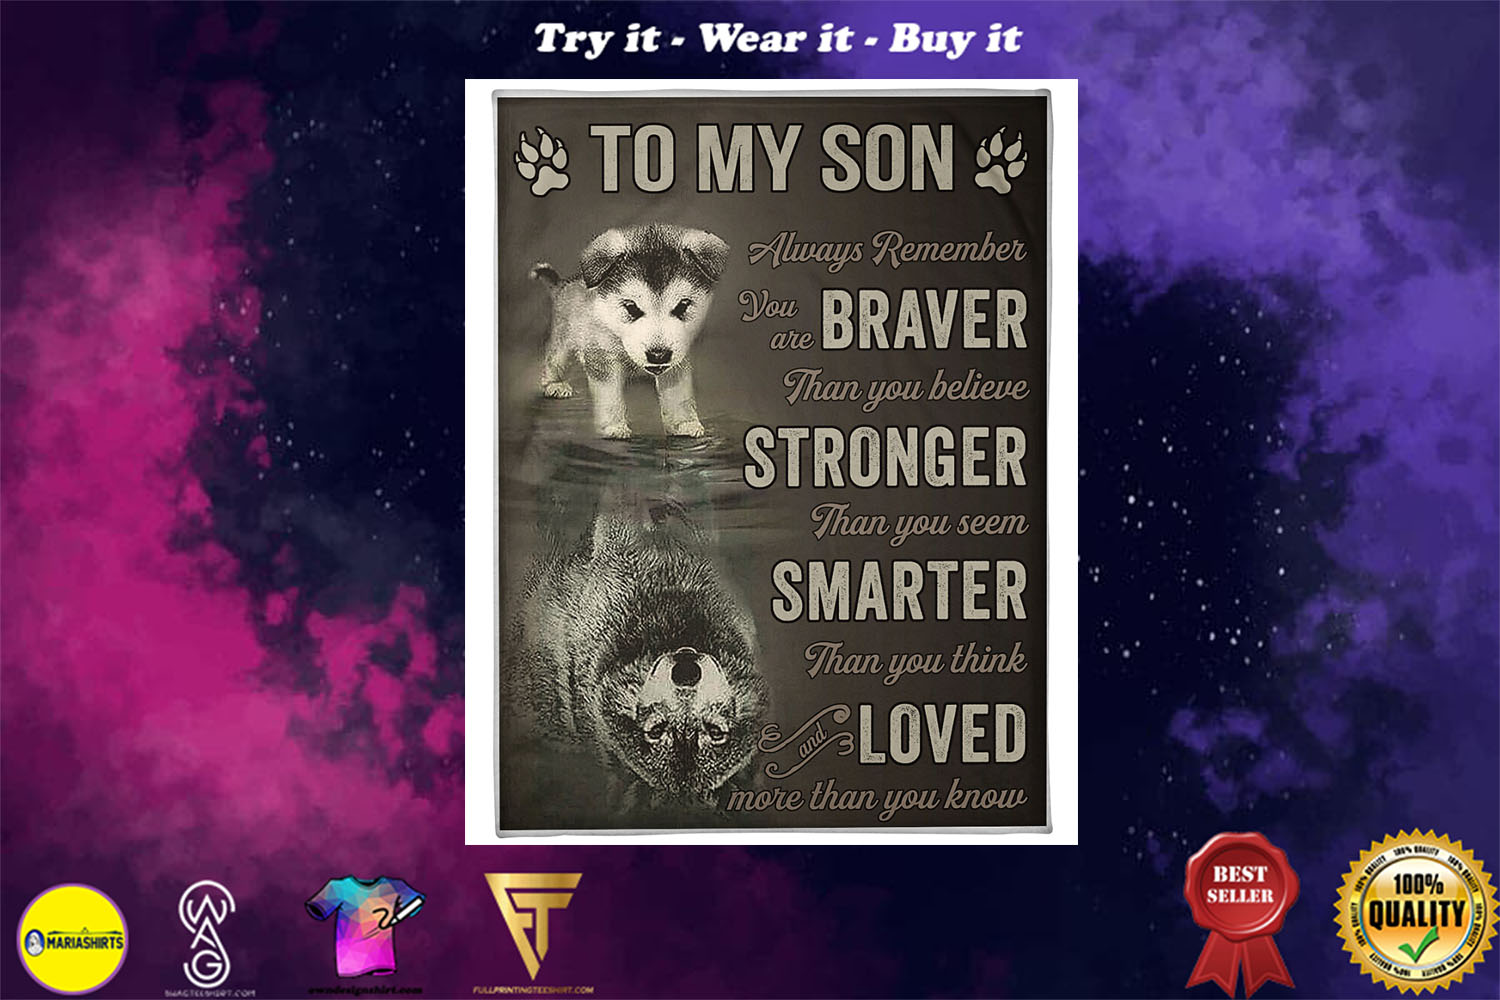 wolf to my son always remember loved more than you know full printing blanket - Copy (2)